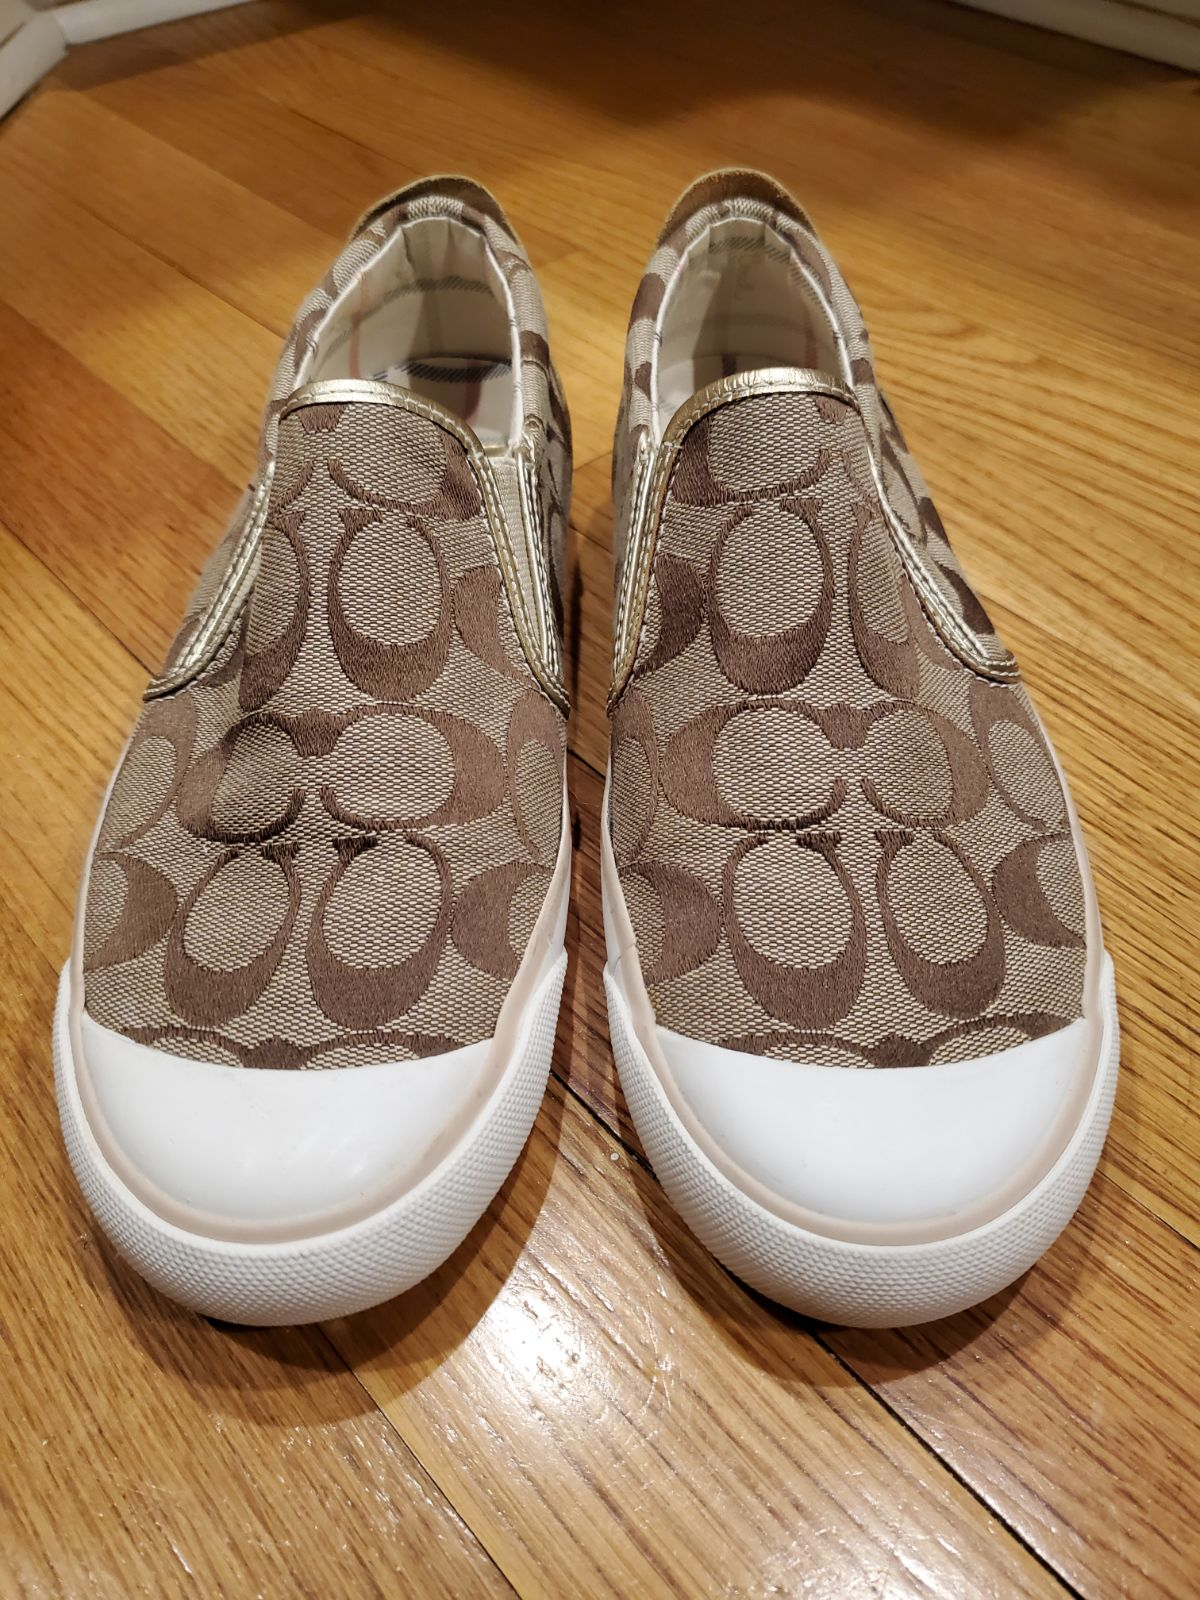 Coach BEALE Slip on shoes 6.5M womens